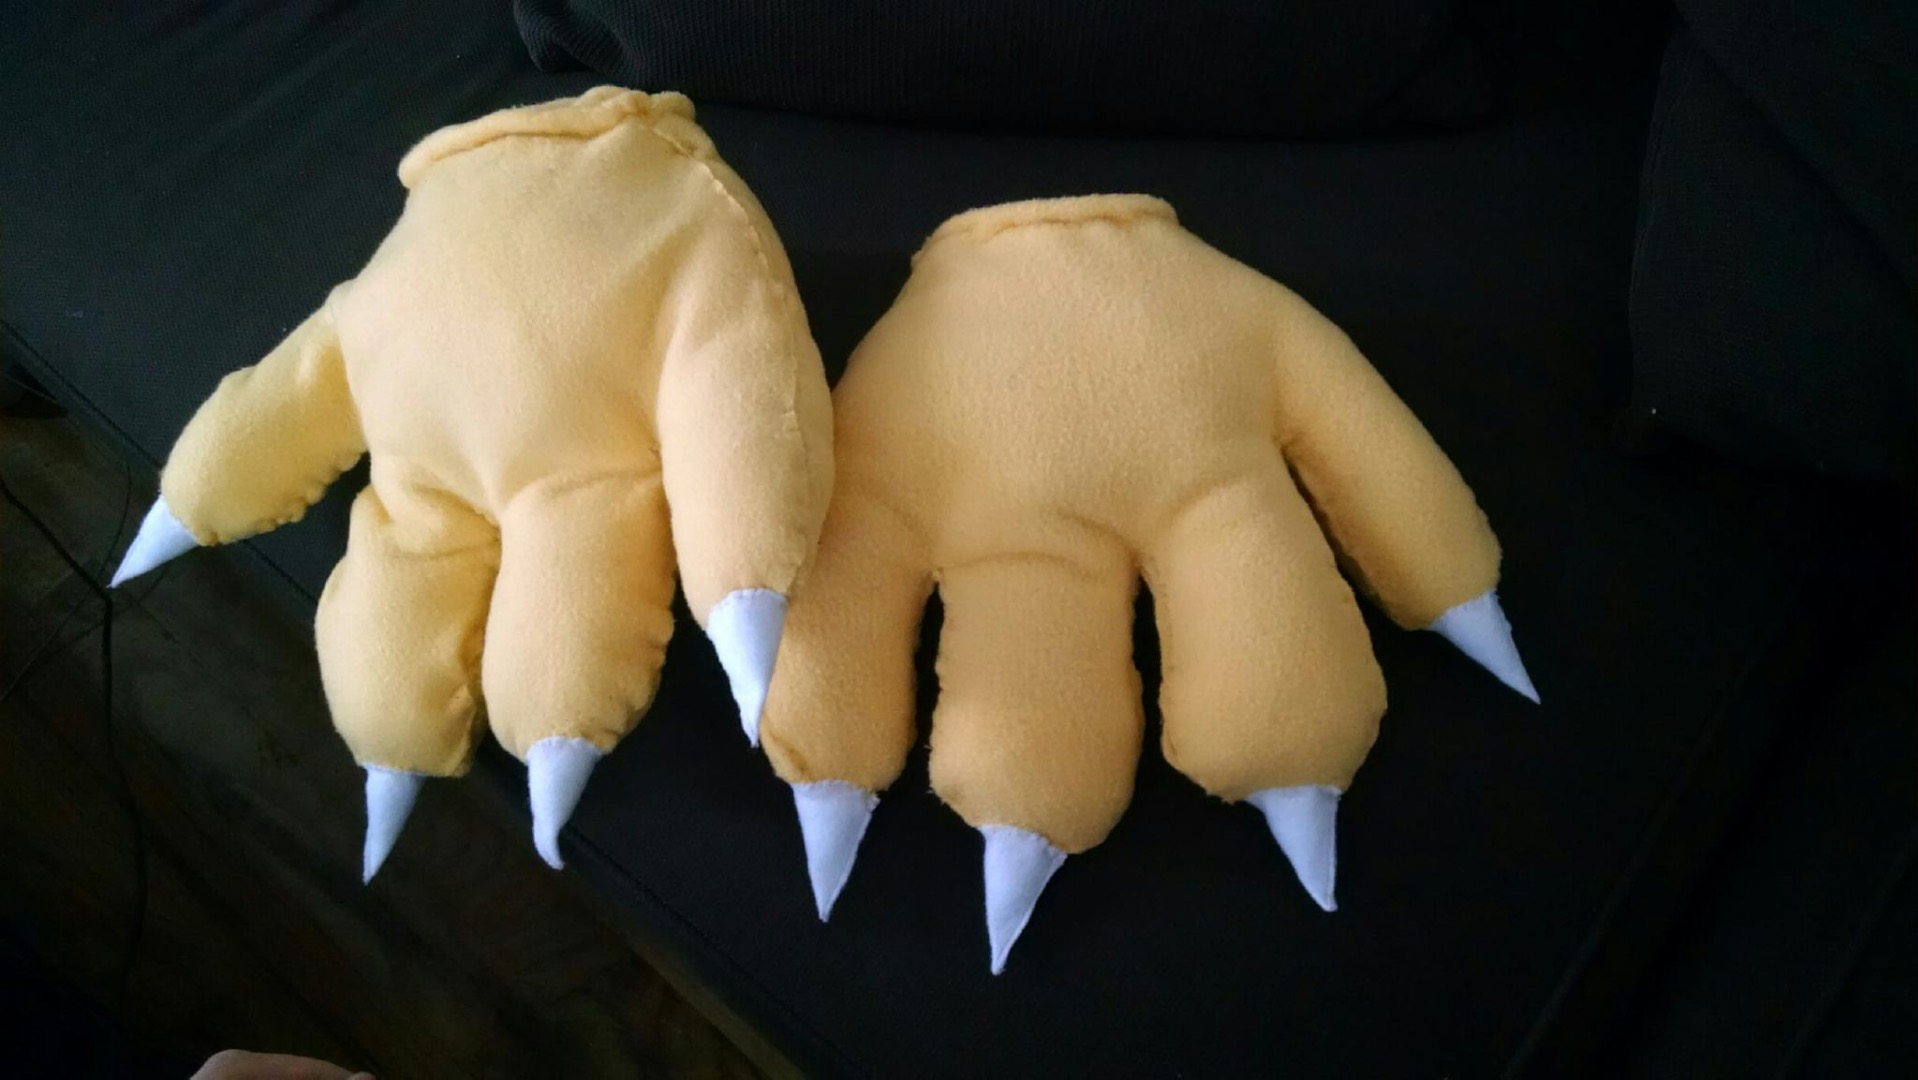 Picture of Feet and Hands, Tail Spikes